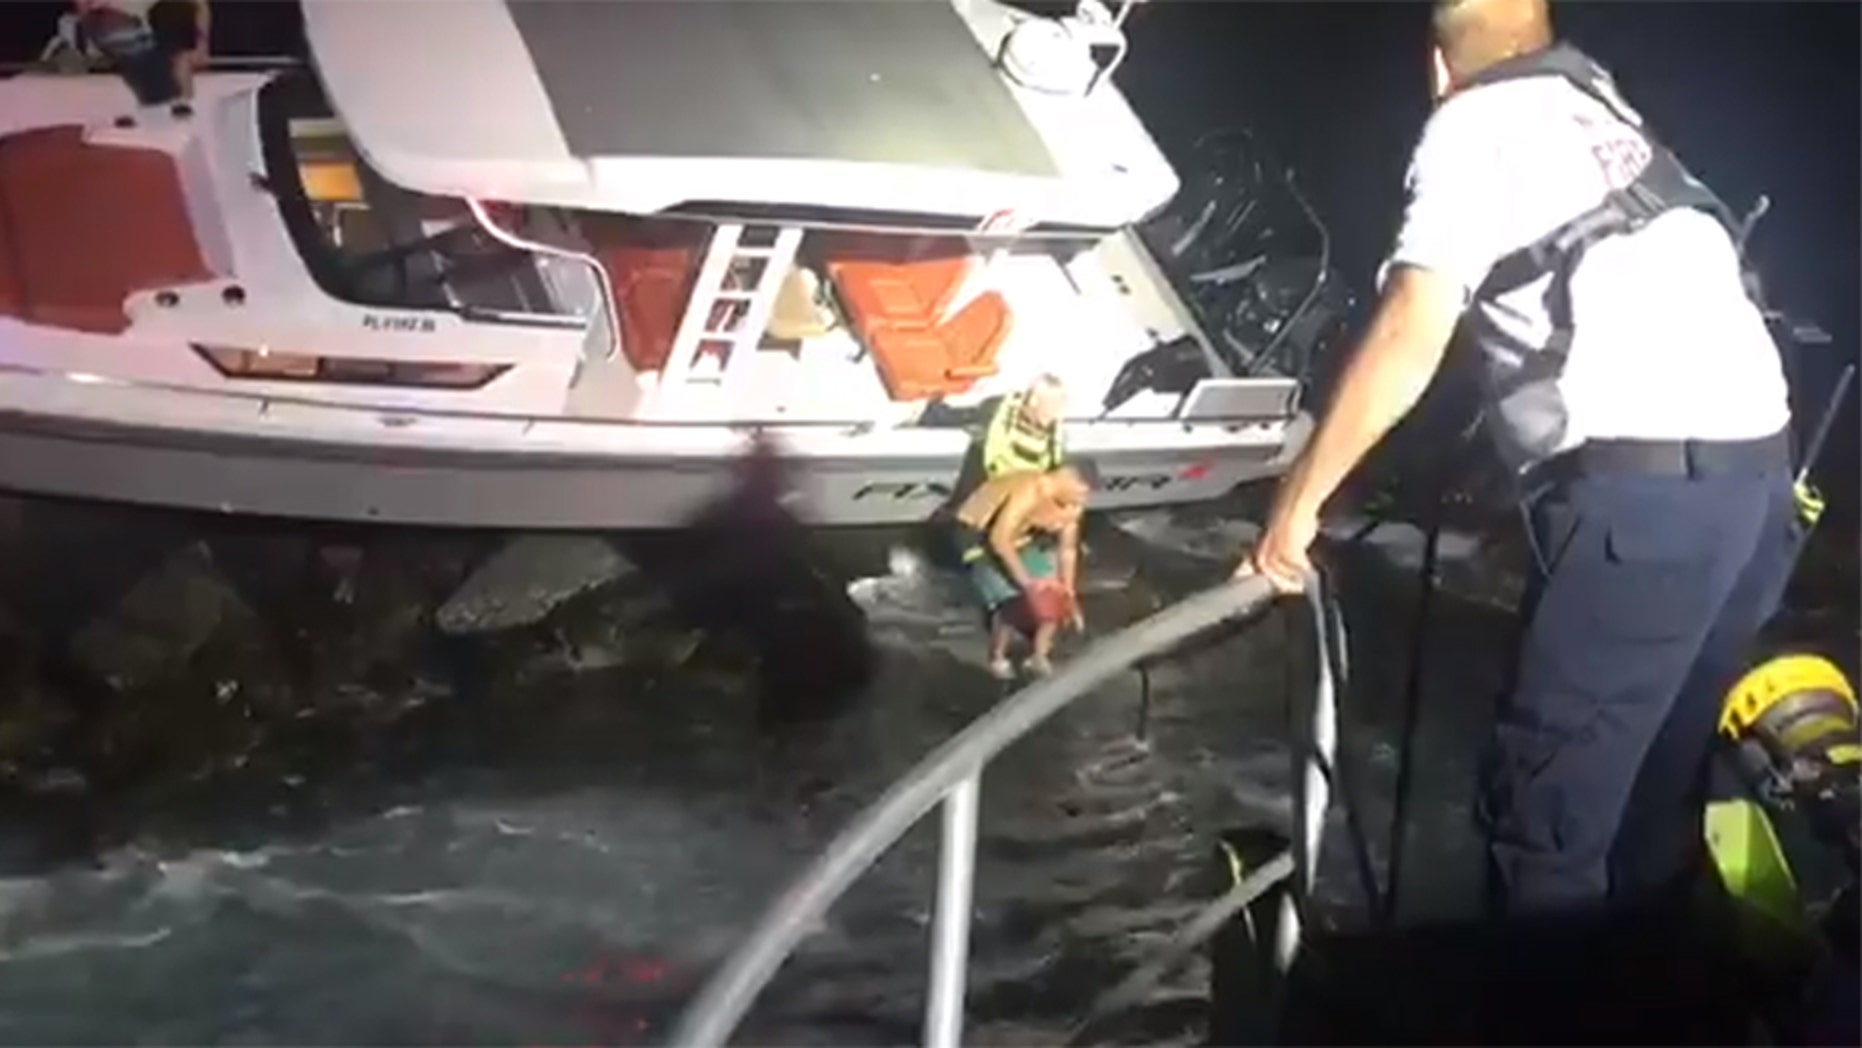 Three people had to be rescued after a boat rammed into a jetty close to where late Miami Marlins pitcher Jose Fernandez was killed in a 2016 crash.